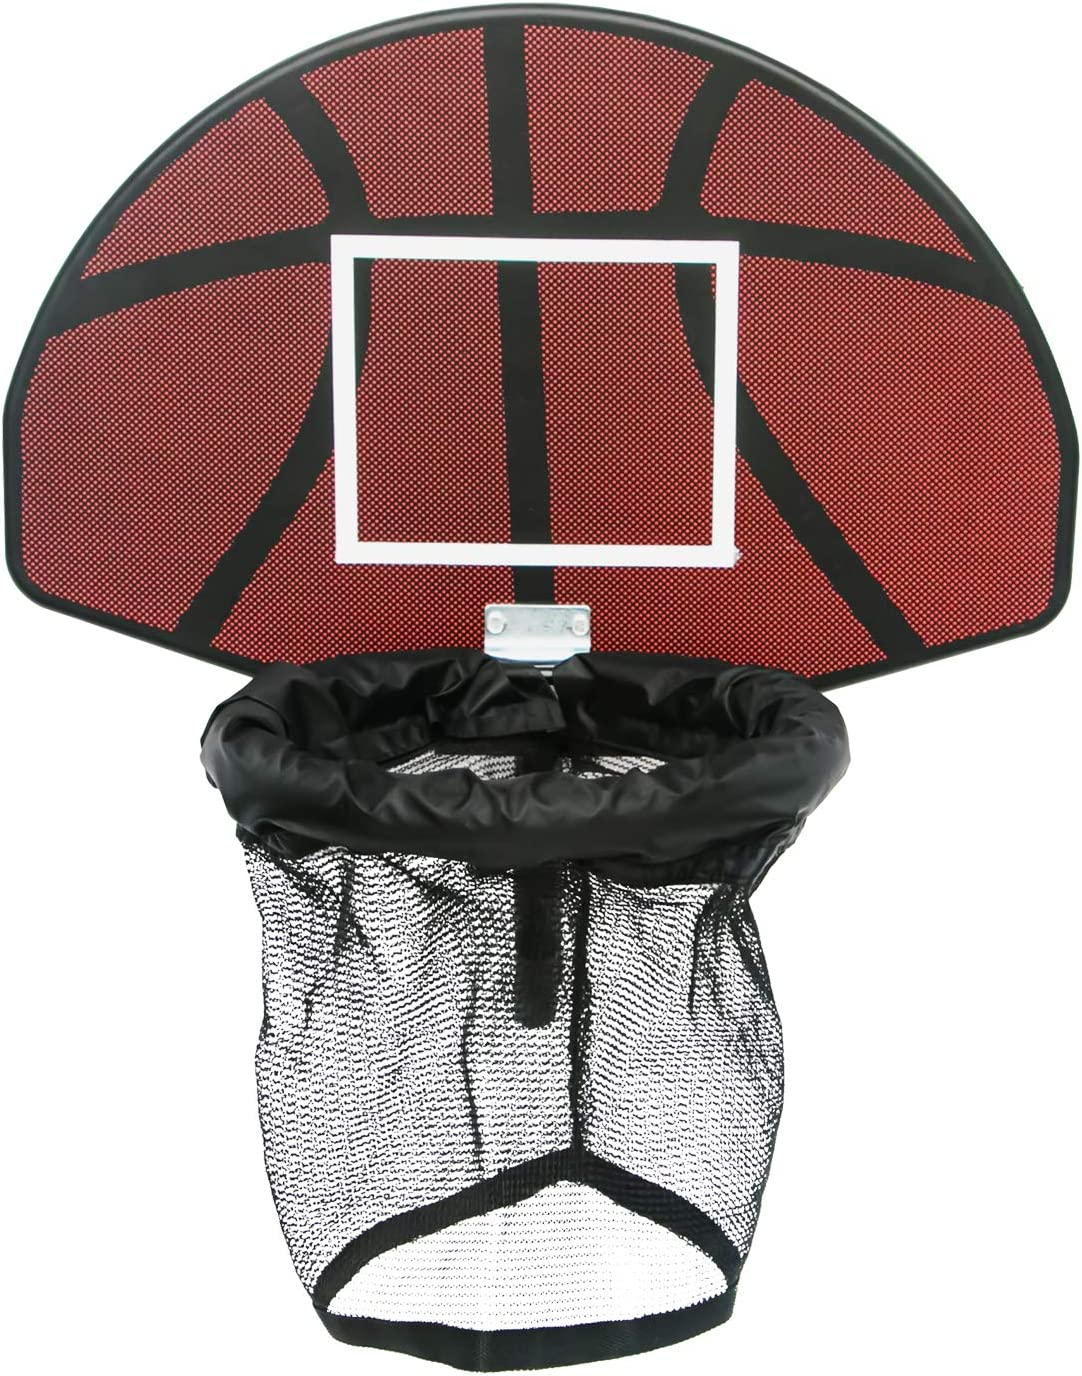 HYD-Parts Trampoline Recommended Basketball Hoop and In a popularity with Mini Pu